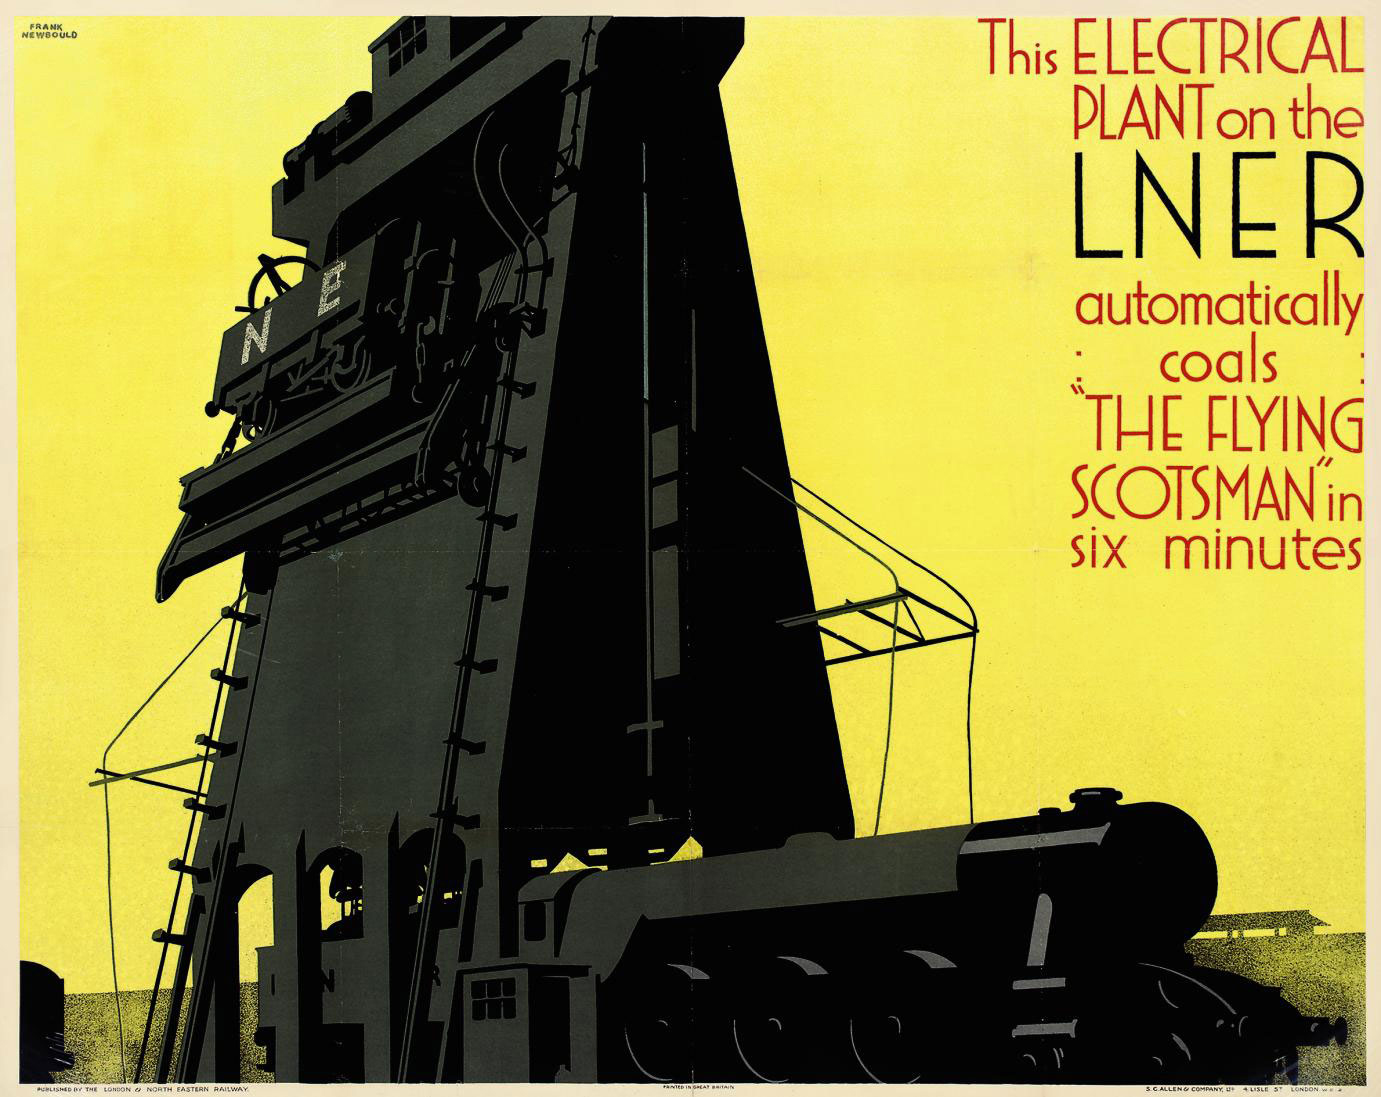 lithographic image of a huge electrical plant made of metal standing firmly against a yellow sky